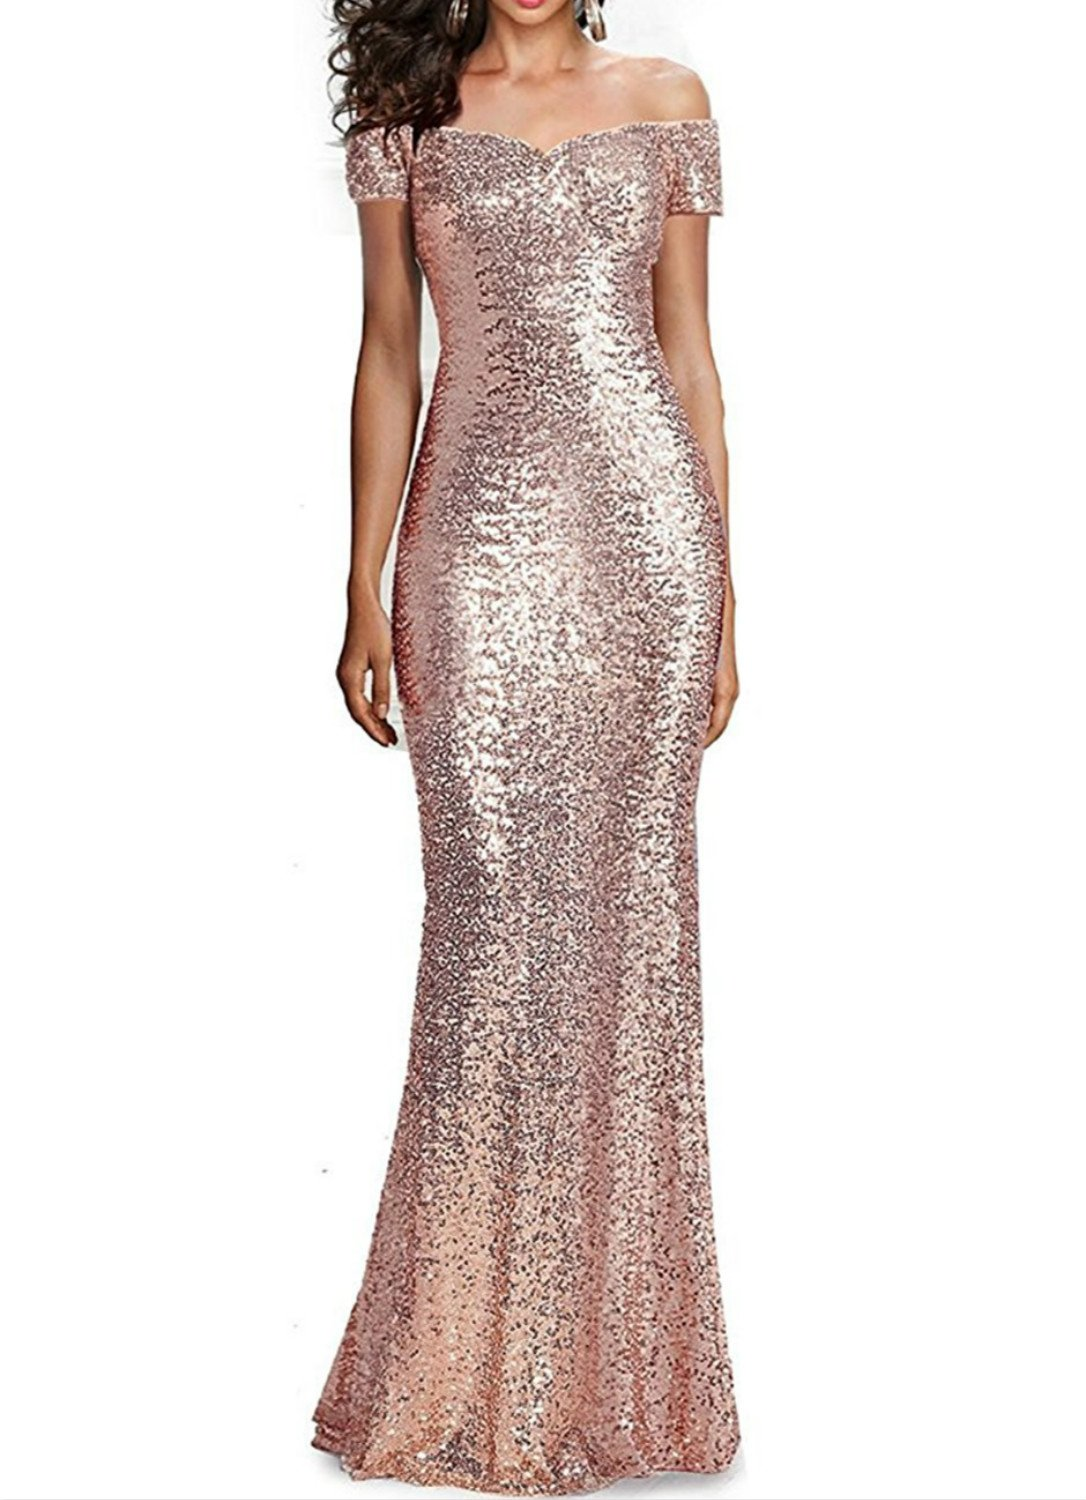 72f1a7457771 ... Prom Dresses Long Mermaid Sequins Evening Party Gowns Size 10 Rose Gold.  ; 